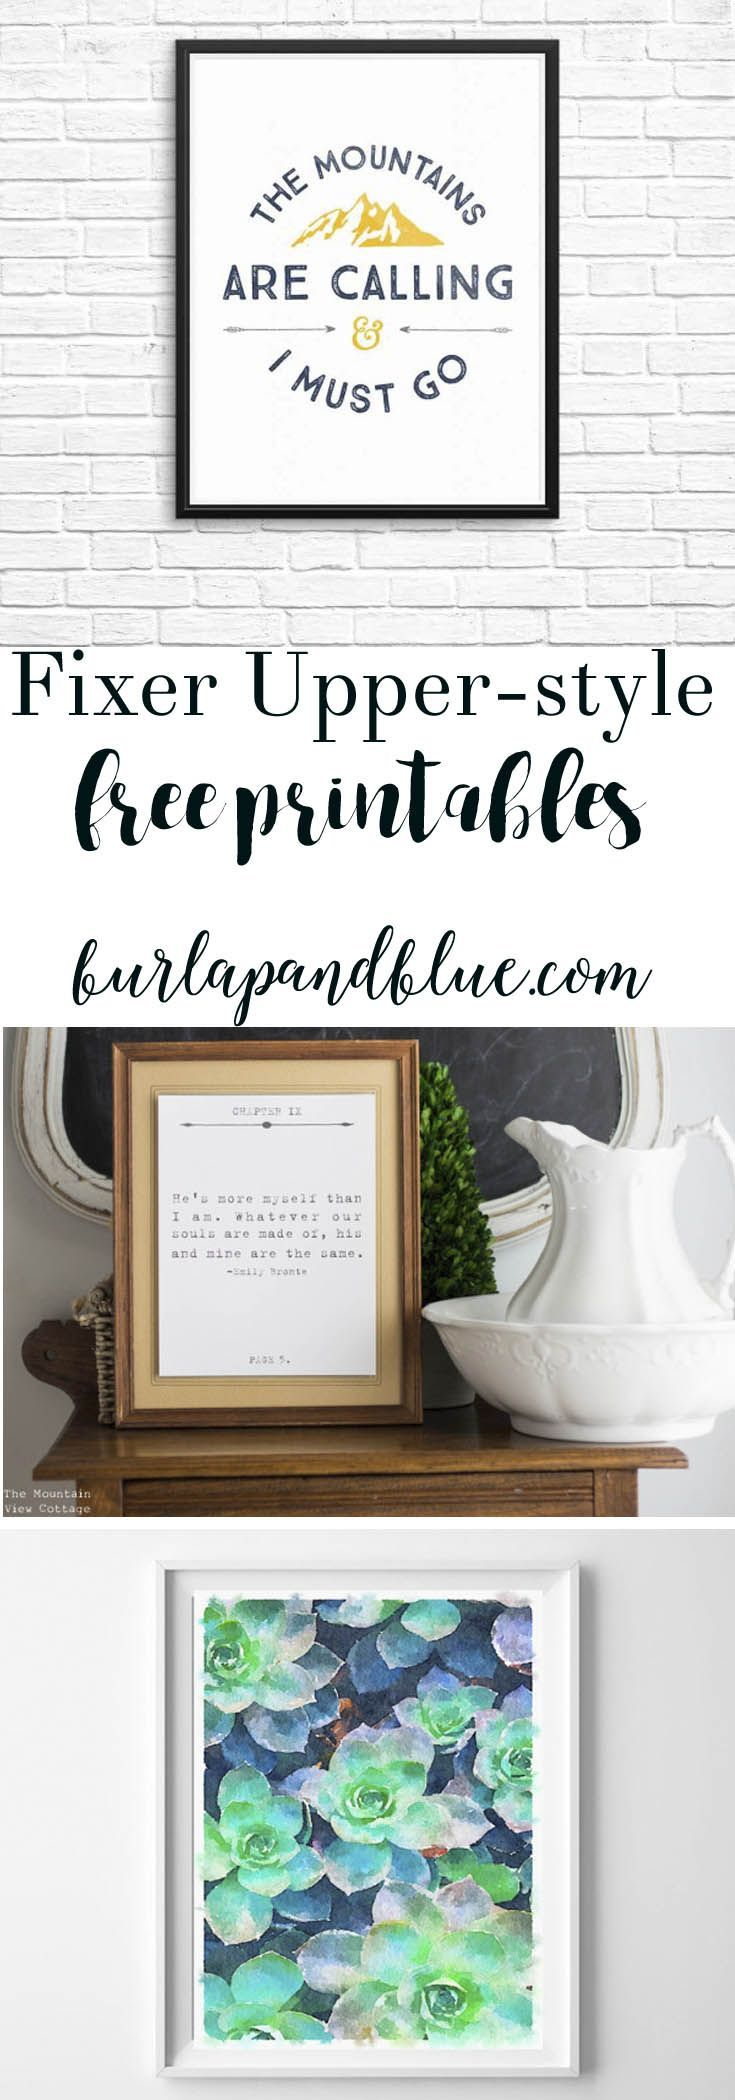 716 Best Images About Printable Decor Free Downloads